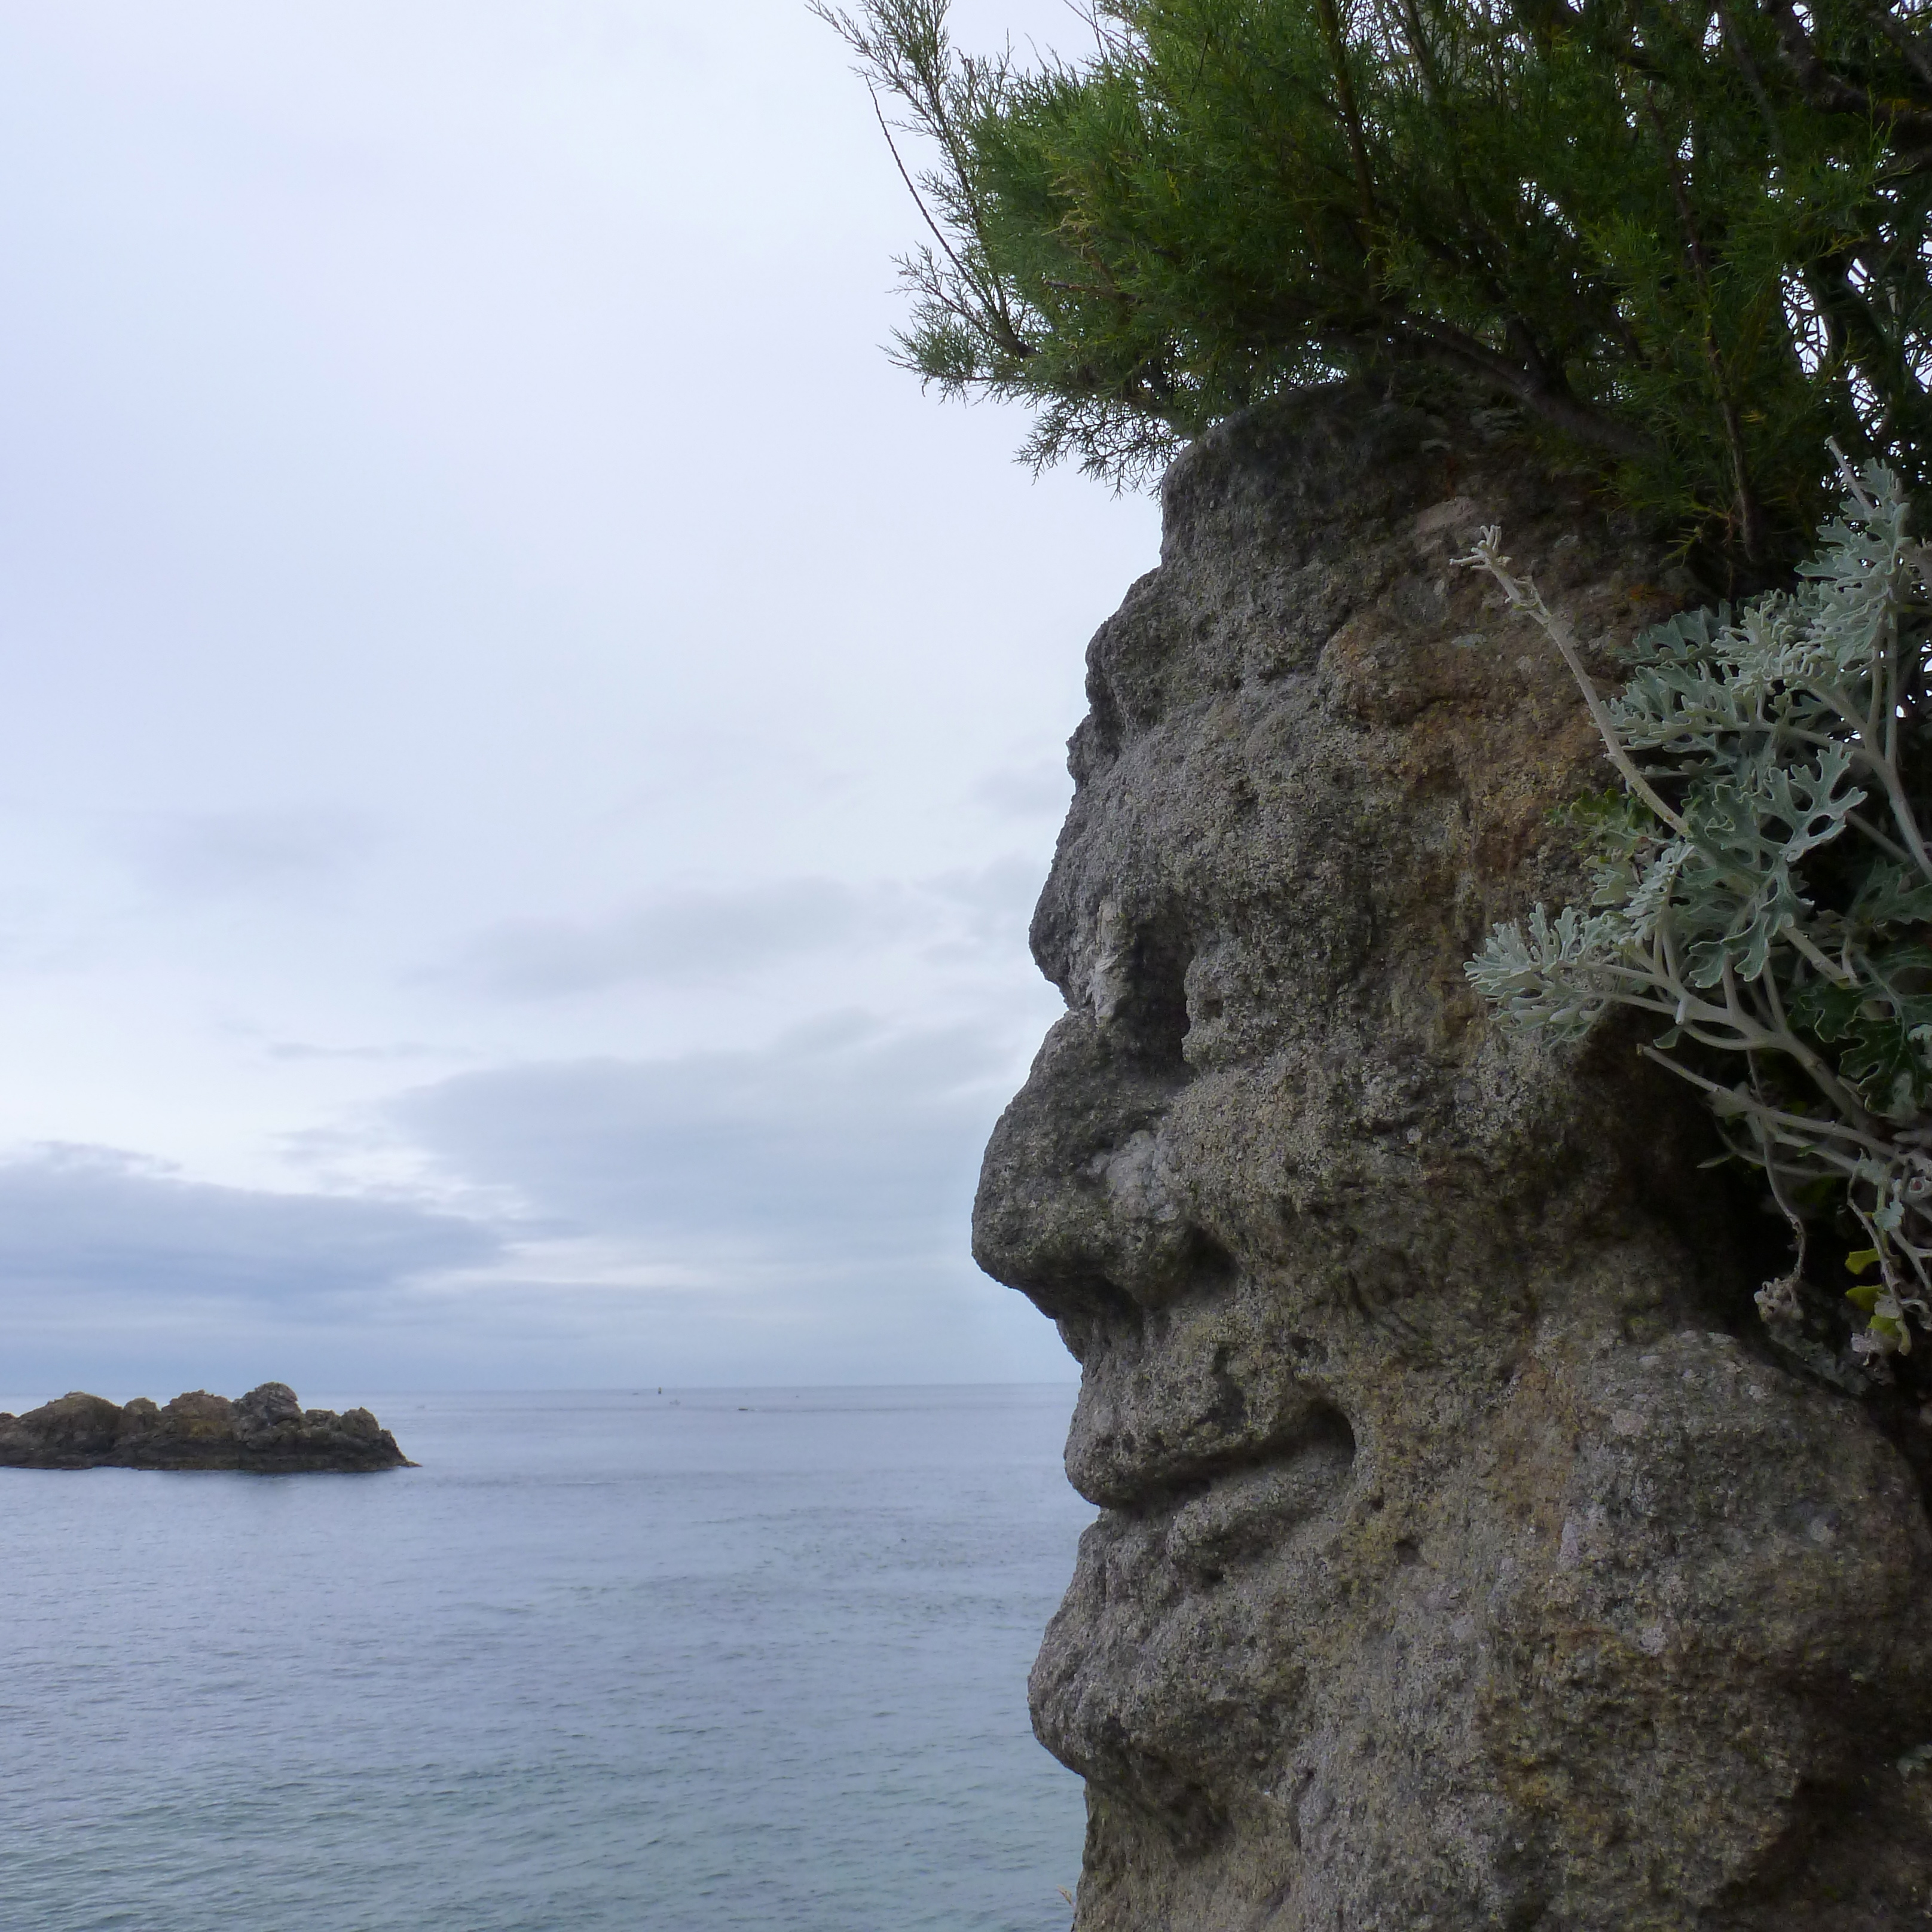 The French Cliff Carved Into Legends Of Old By One Mute Abbot